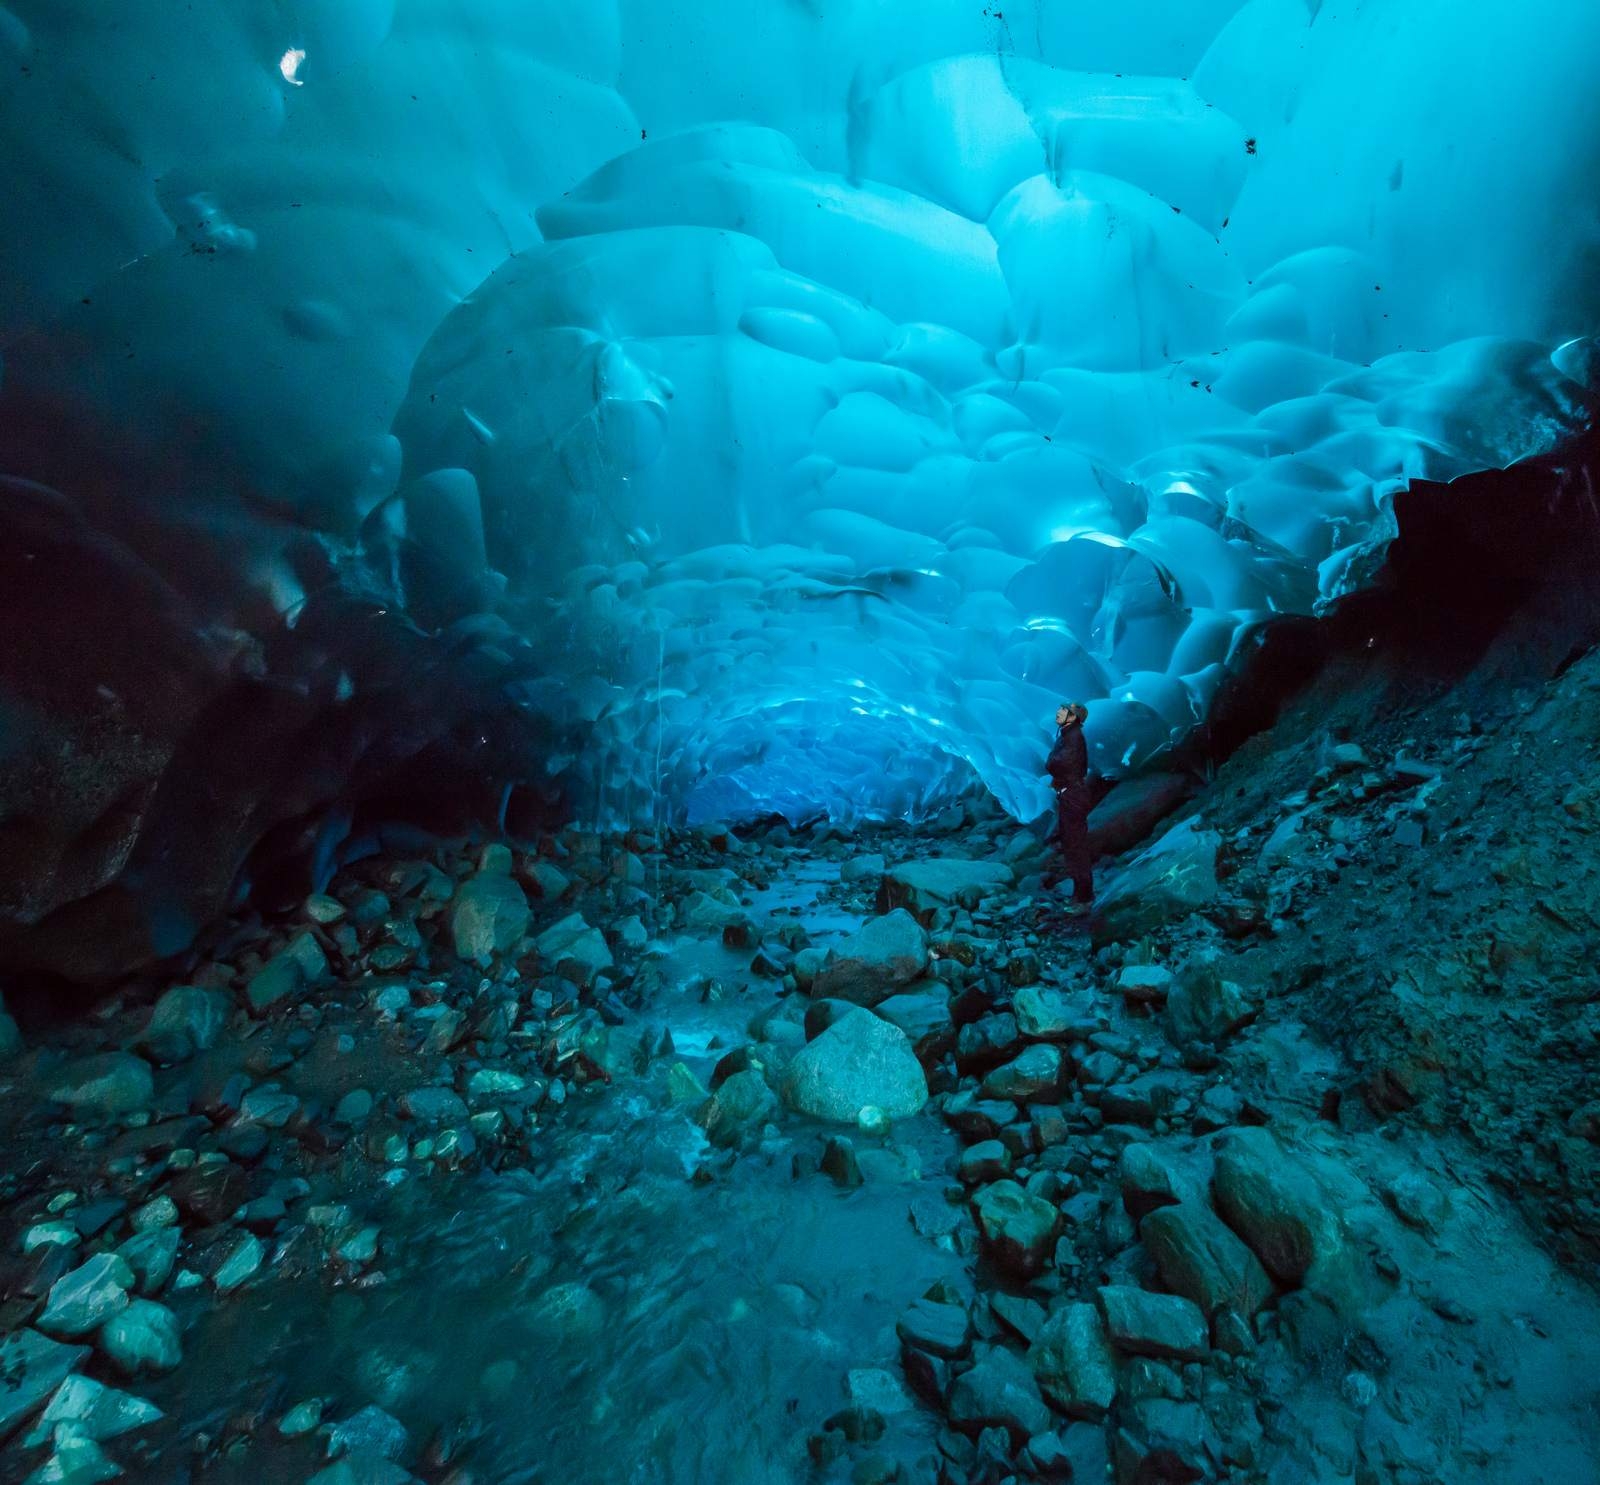 mendenhall4 Ice Caves under the Mendenhall Glacier in Juneau, Alaska